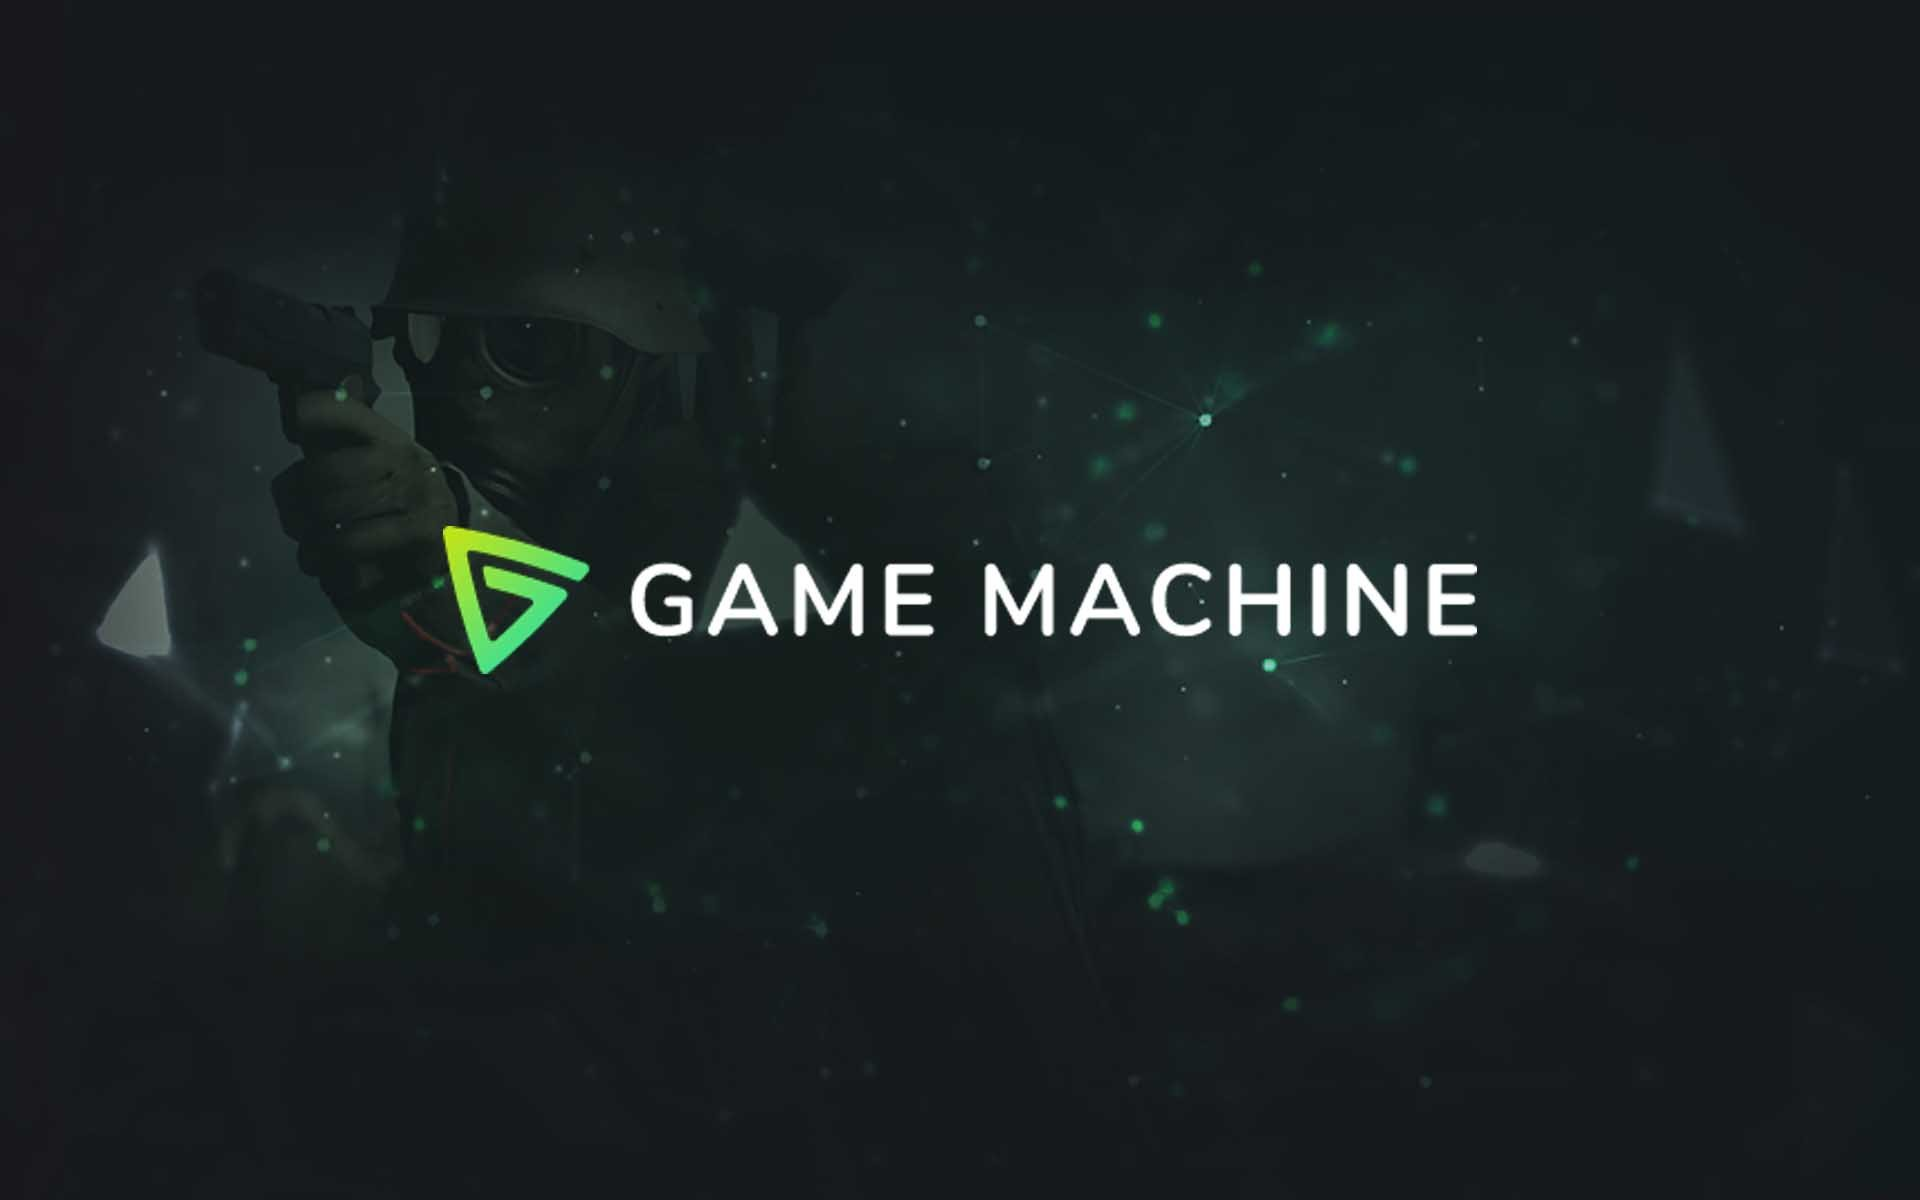 Game Machine - Changing How Game Development is Funded Through Blockchain Tech